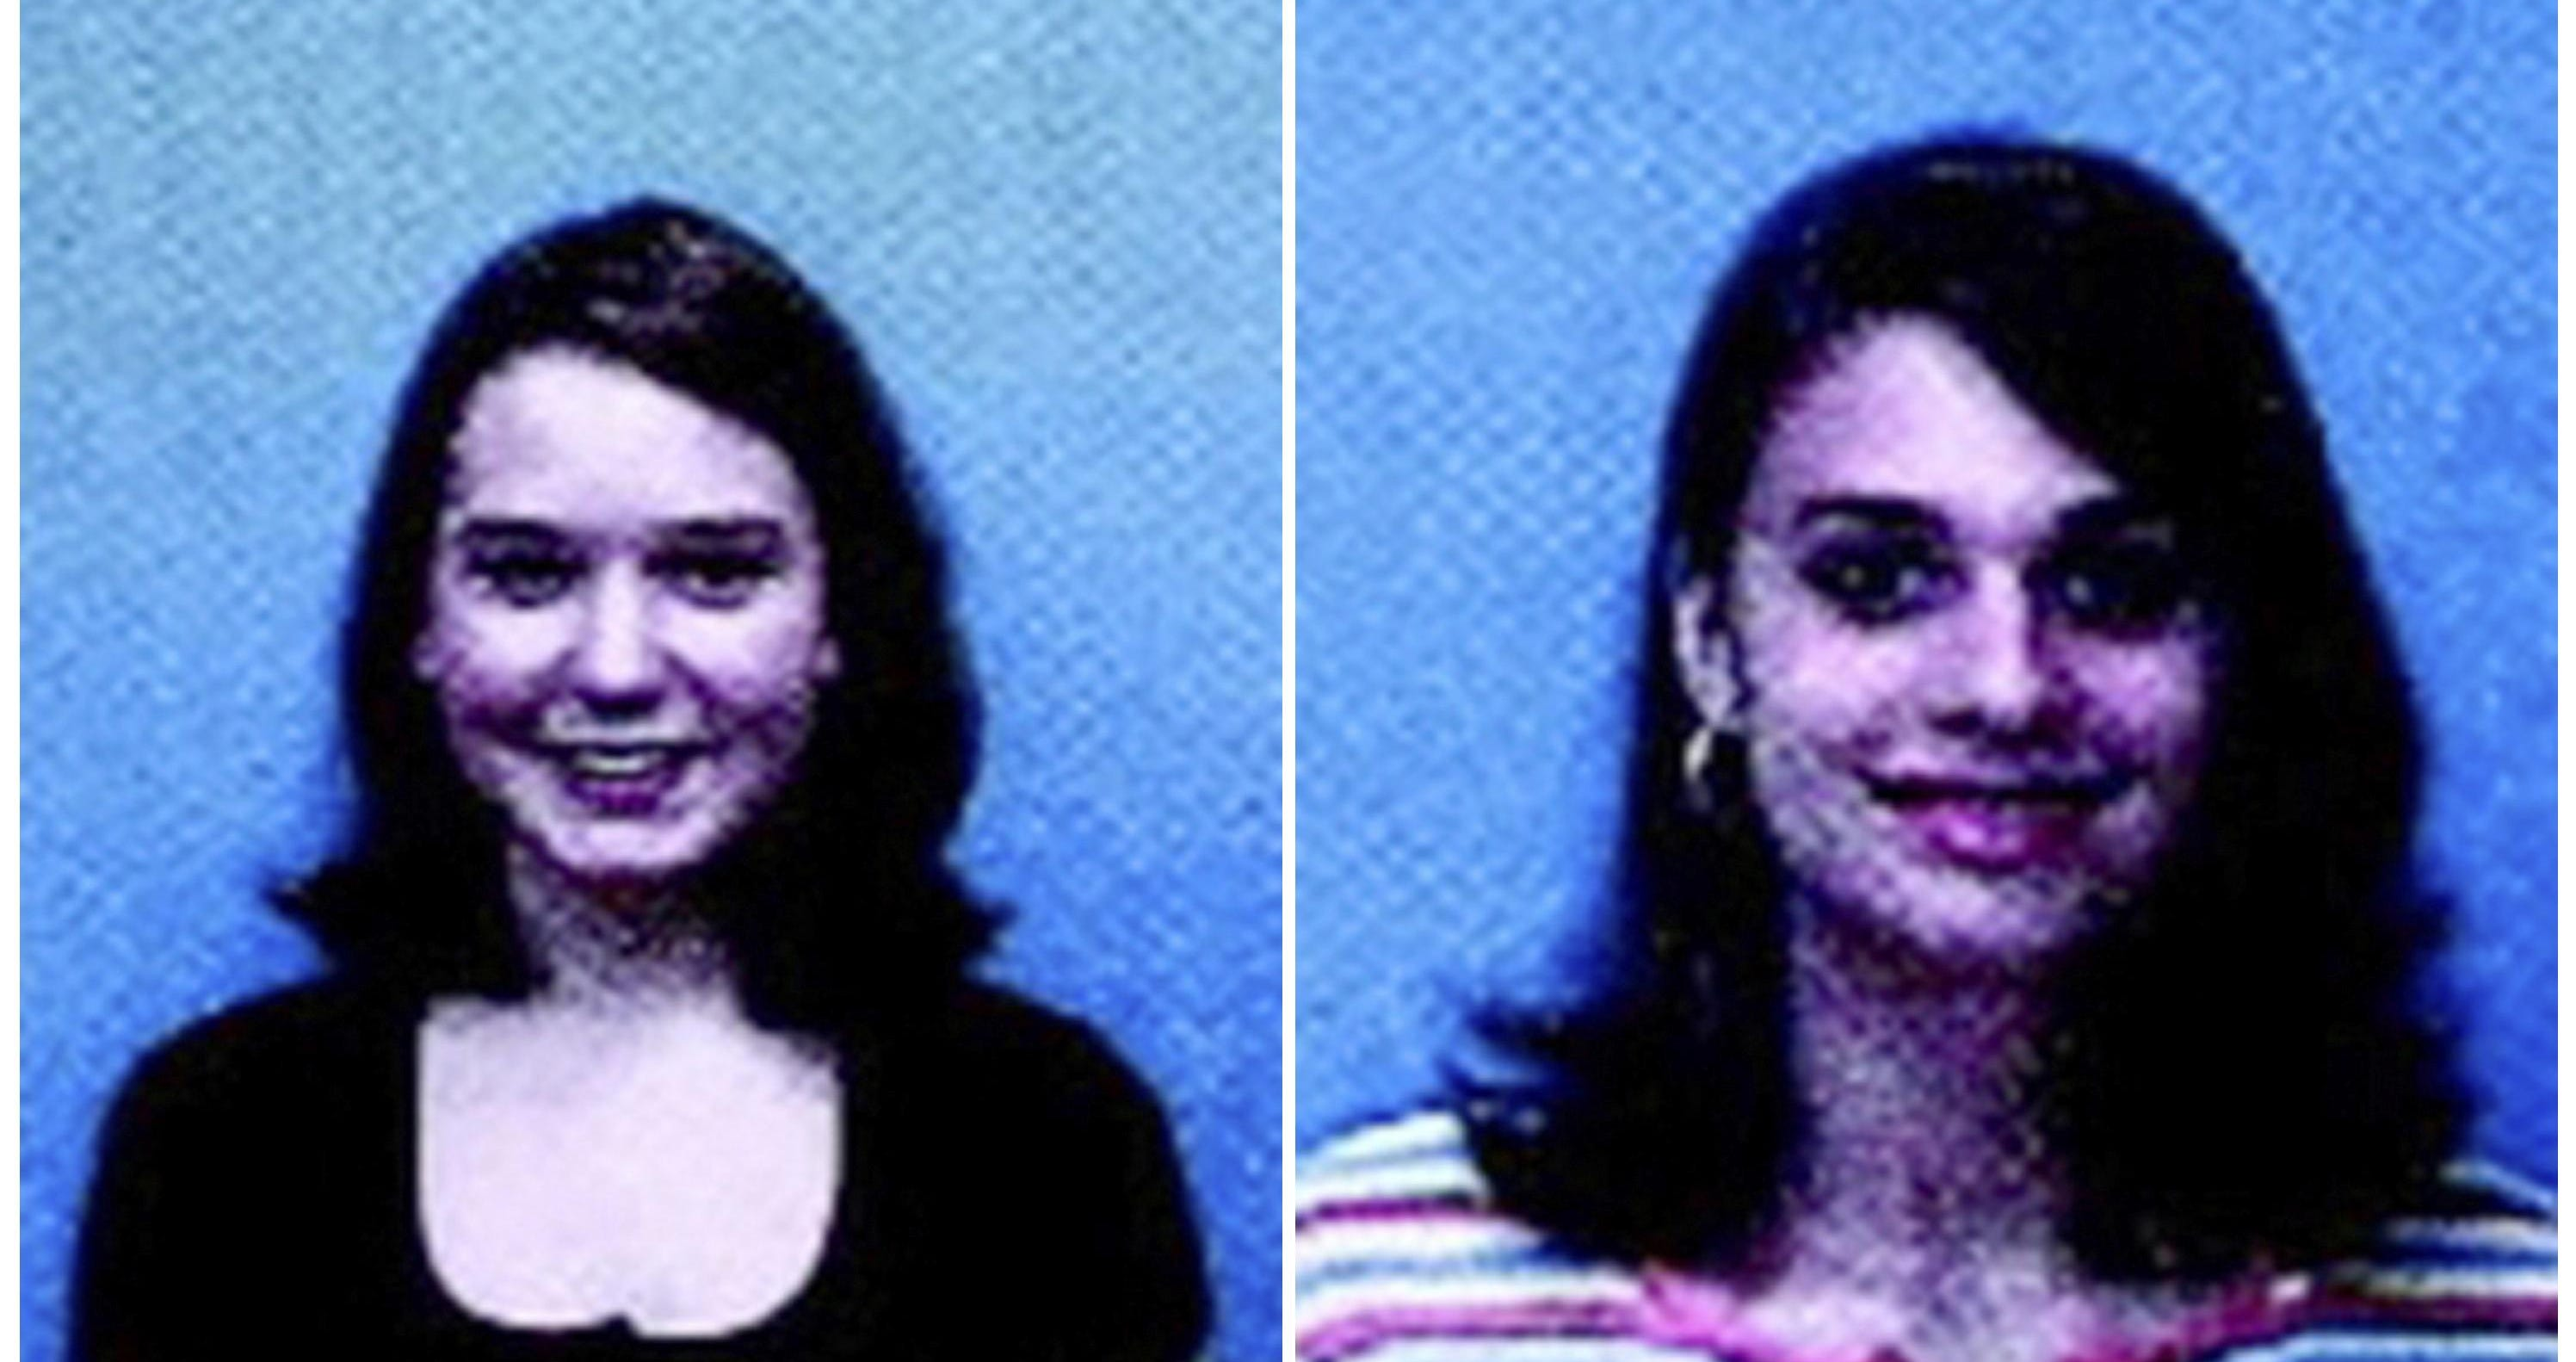 J.B. Beasley, left, and Tracie Hawlett, who were both murdered in July 1999.